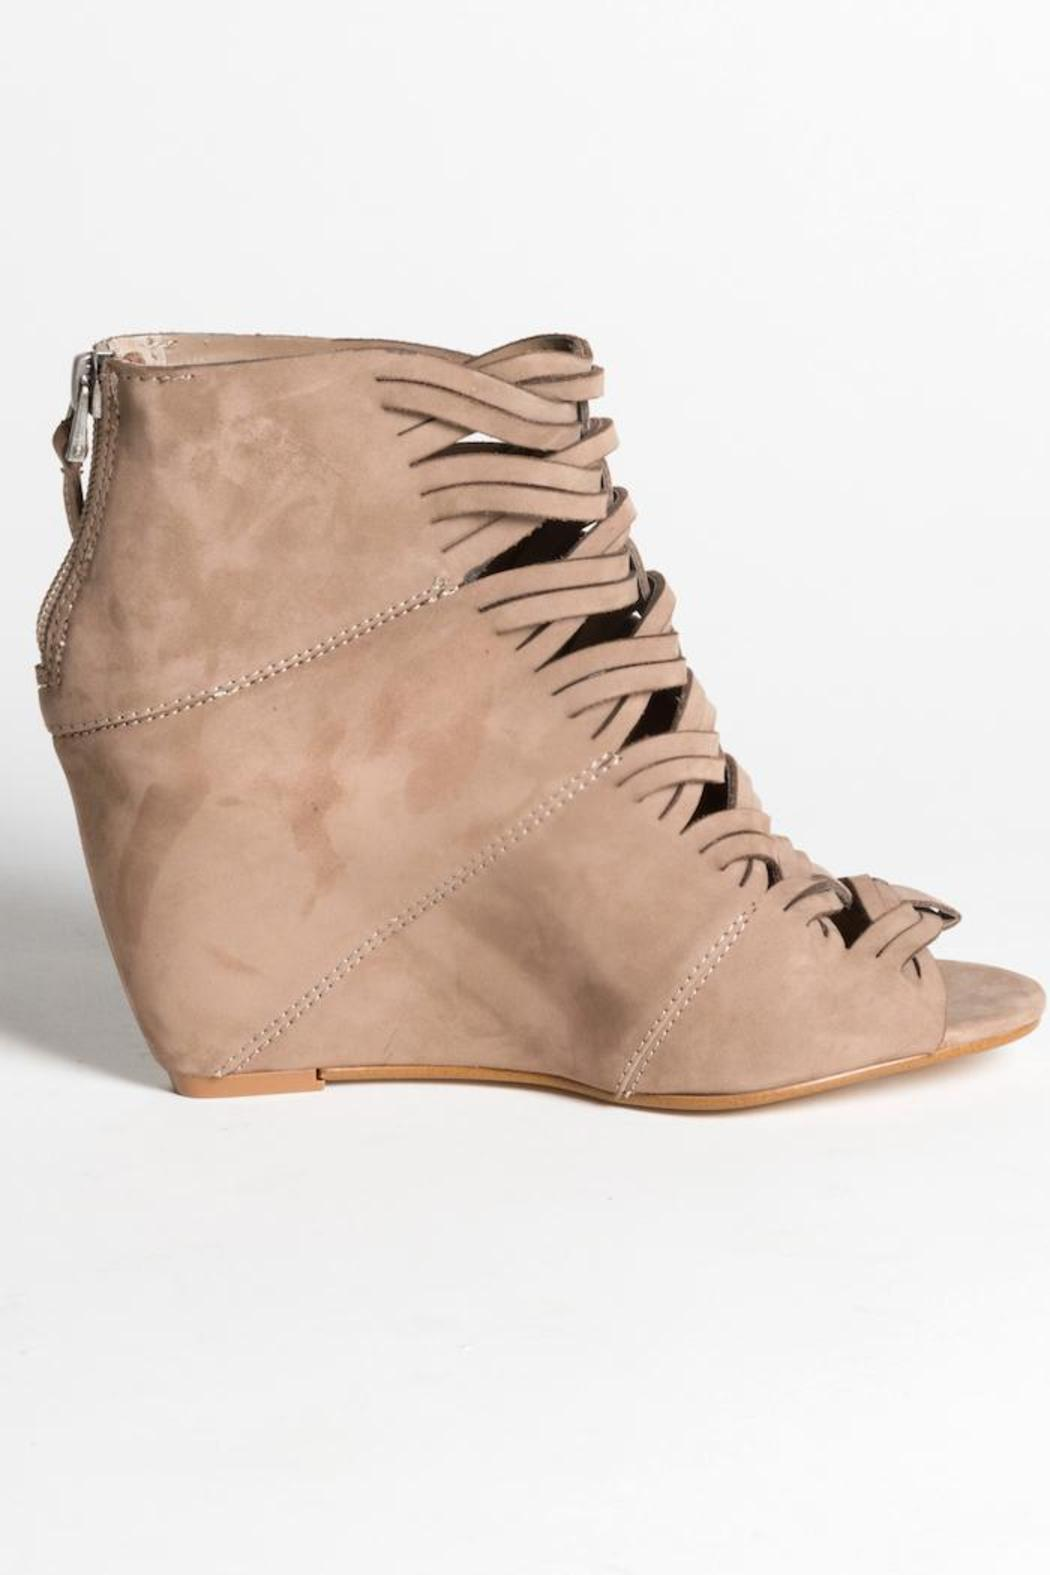 Dolce Vita Tan Suede Wedge - Side Cropped Image